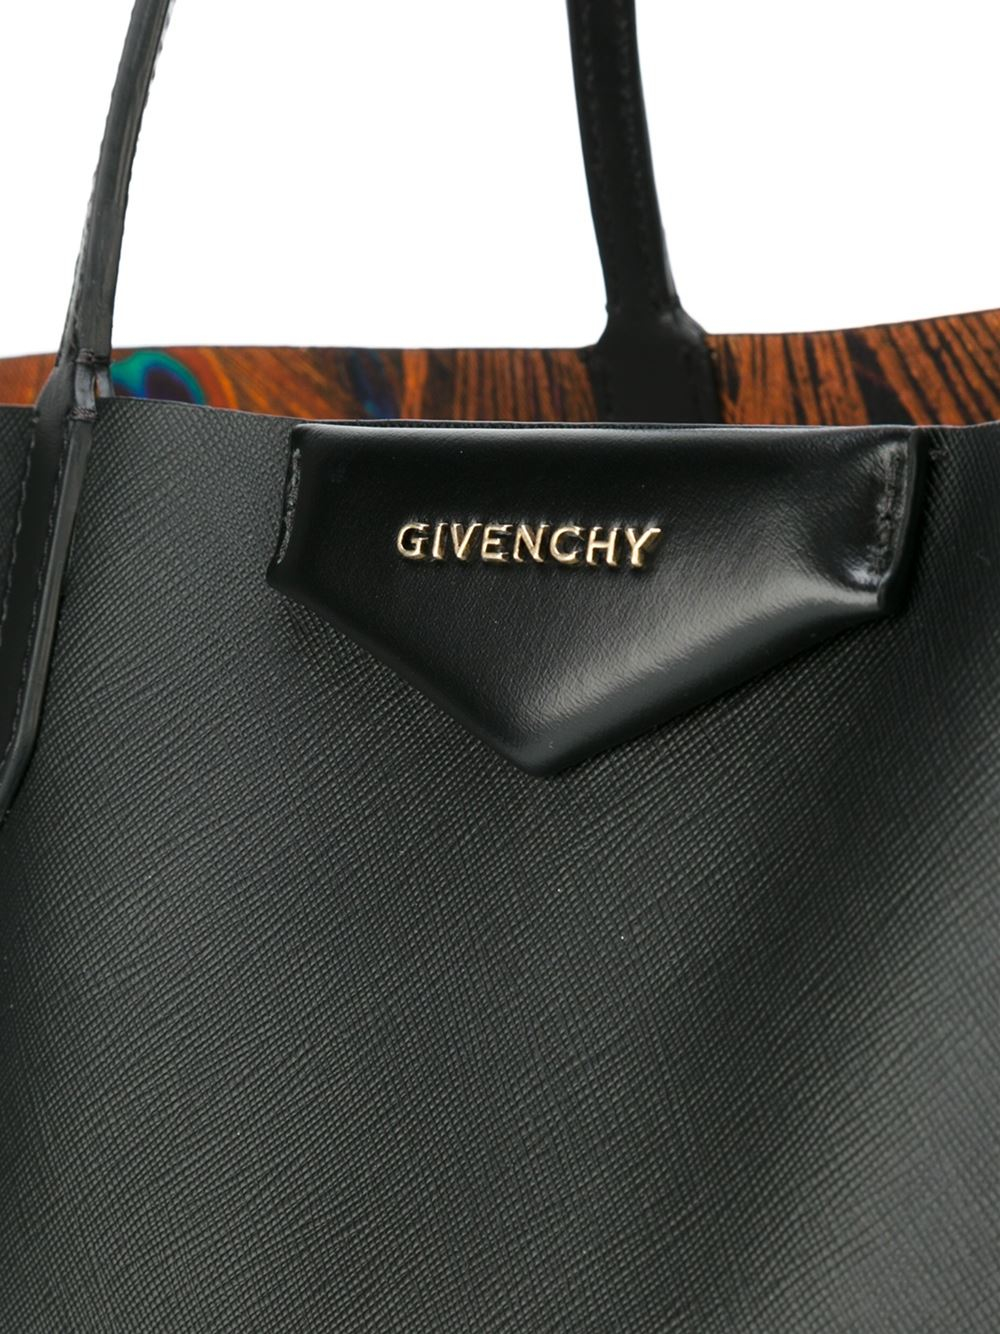 0f78d47ebf givenchy medium antigona shopper tote